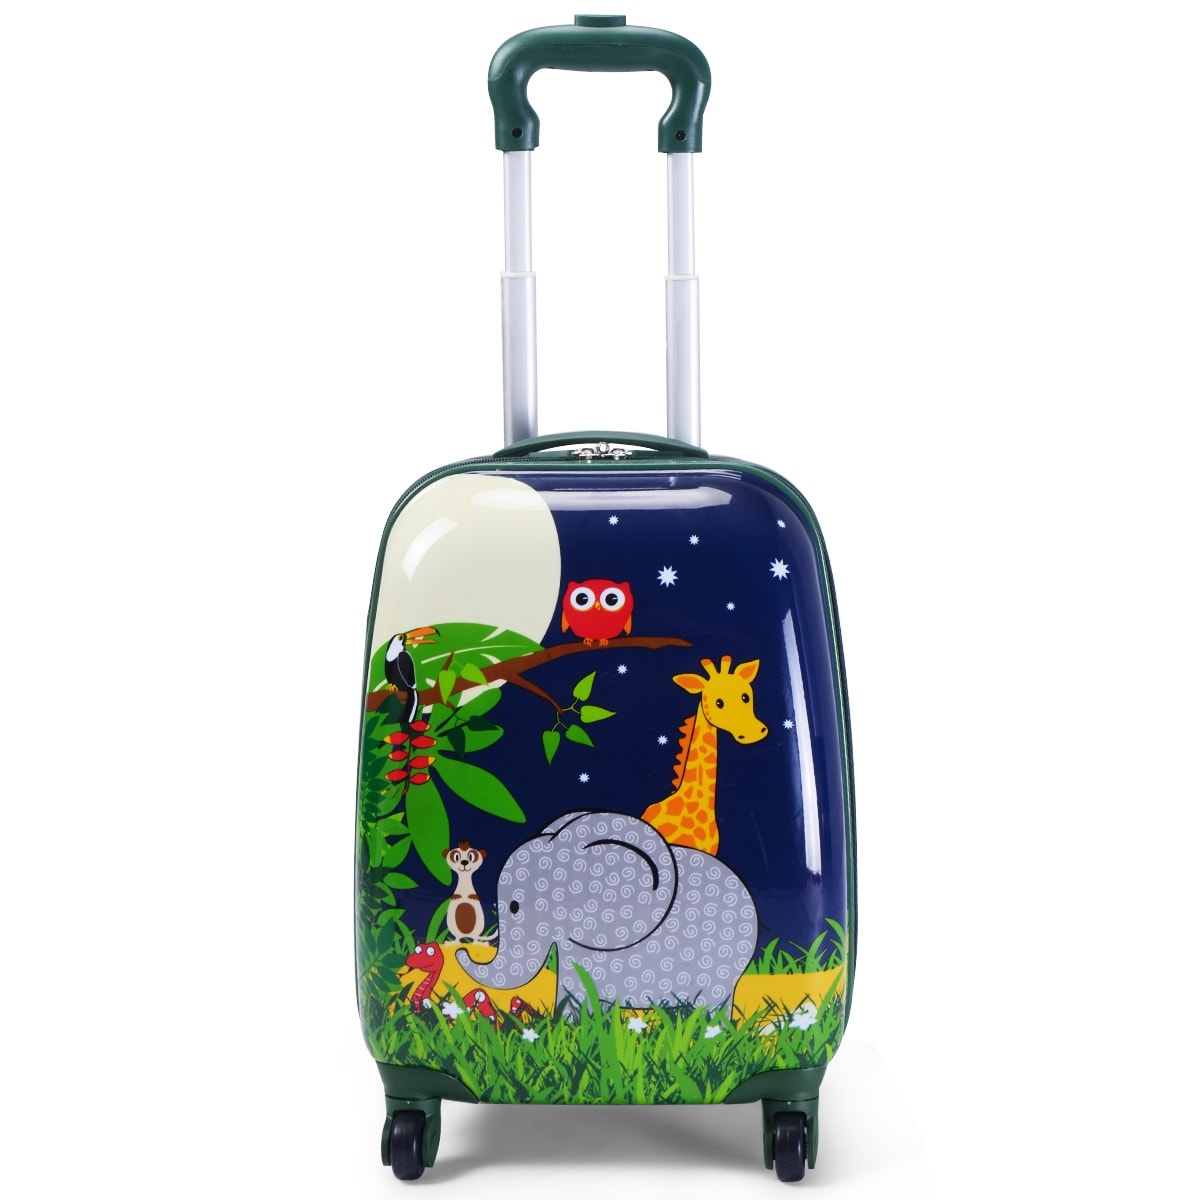 f1c1fa7bc Shop Costway 2Pc 12'' 16'' Kids Luggage Set Suitcase Backpack School Travel  Trolley ABS - Blue - Free Shipping Today - Overstock - 18299210